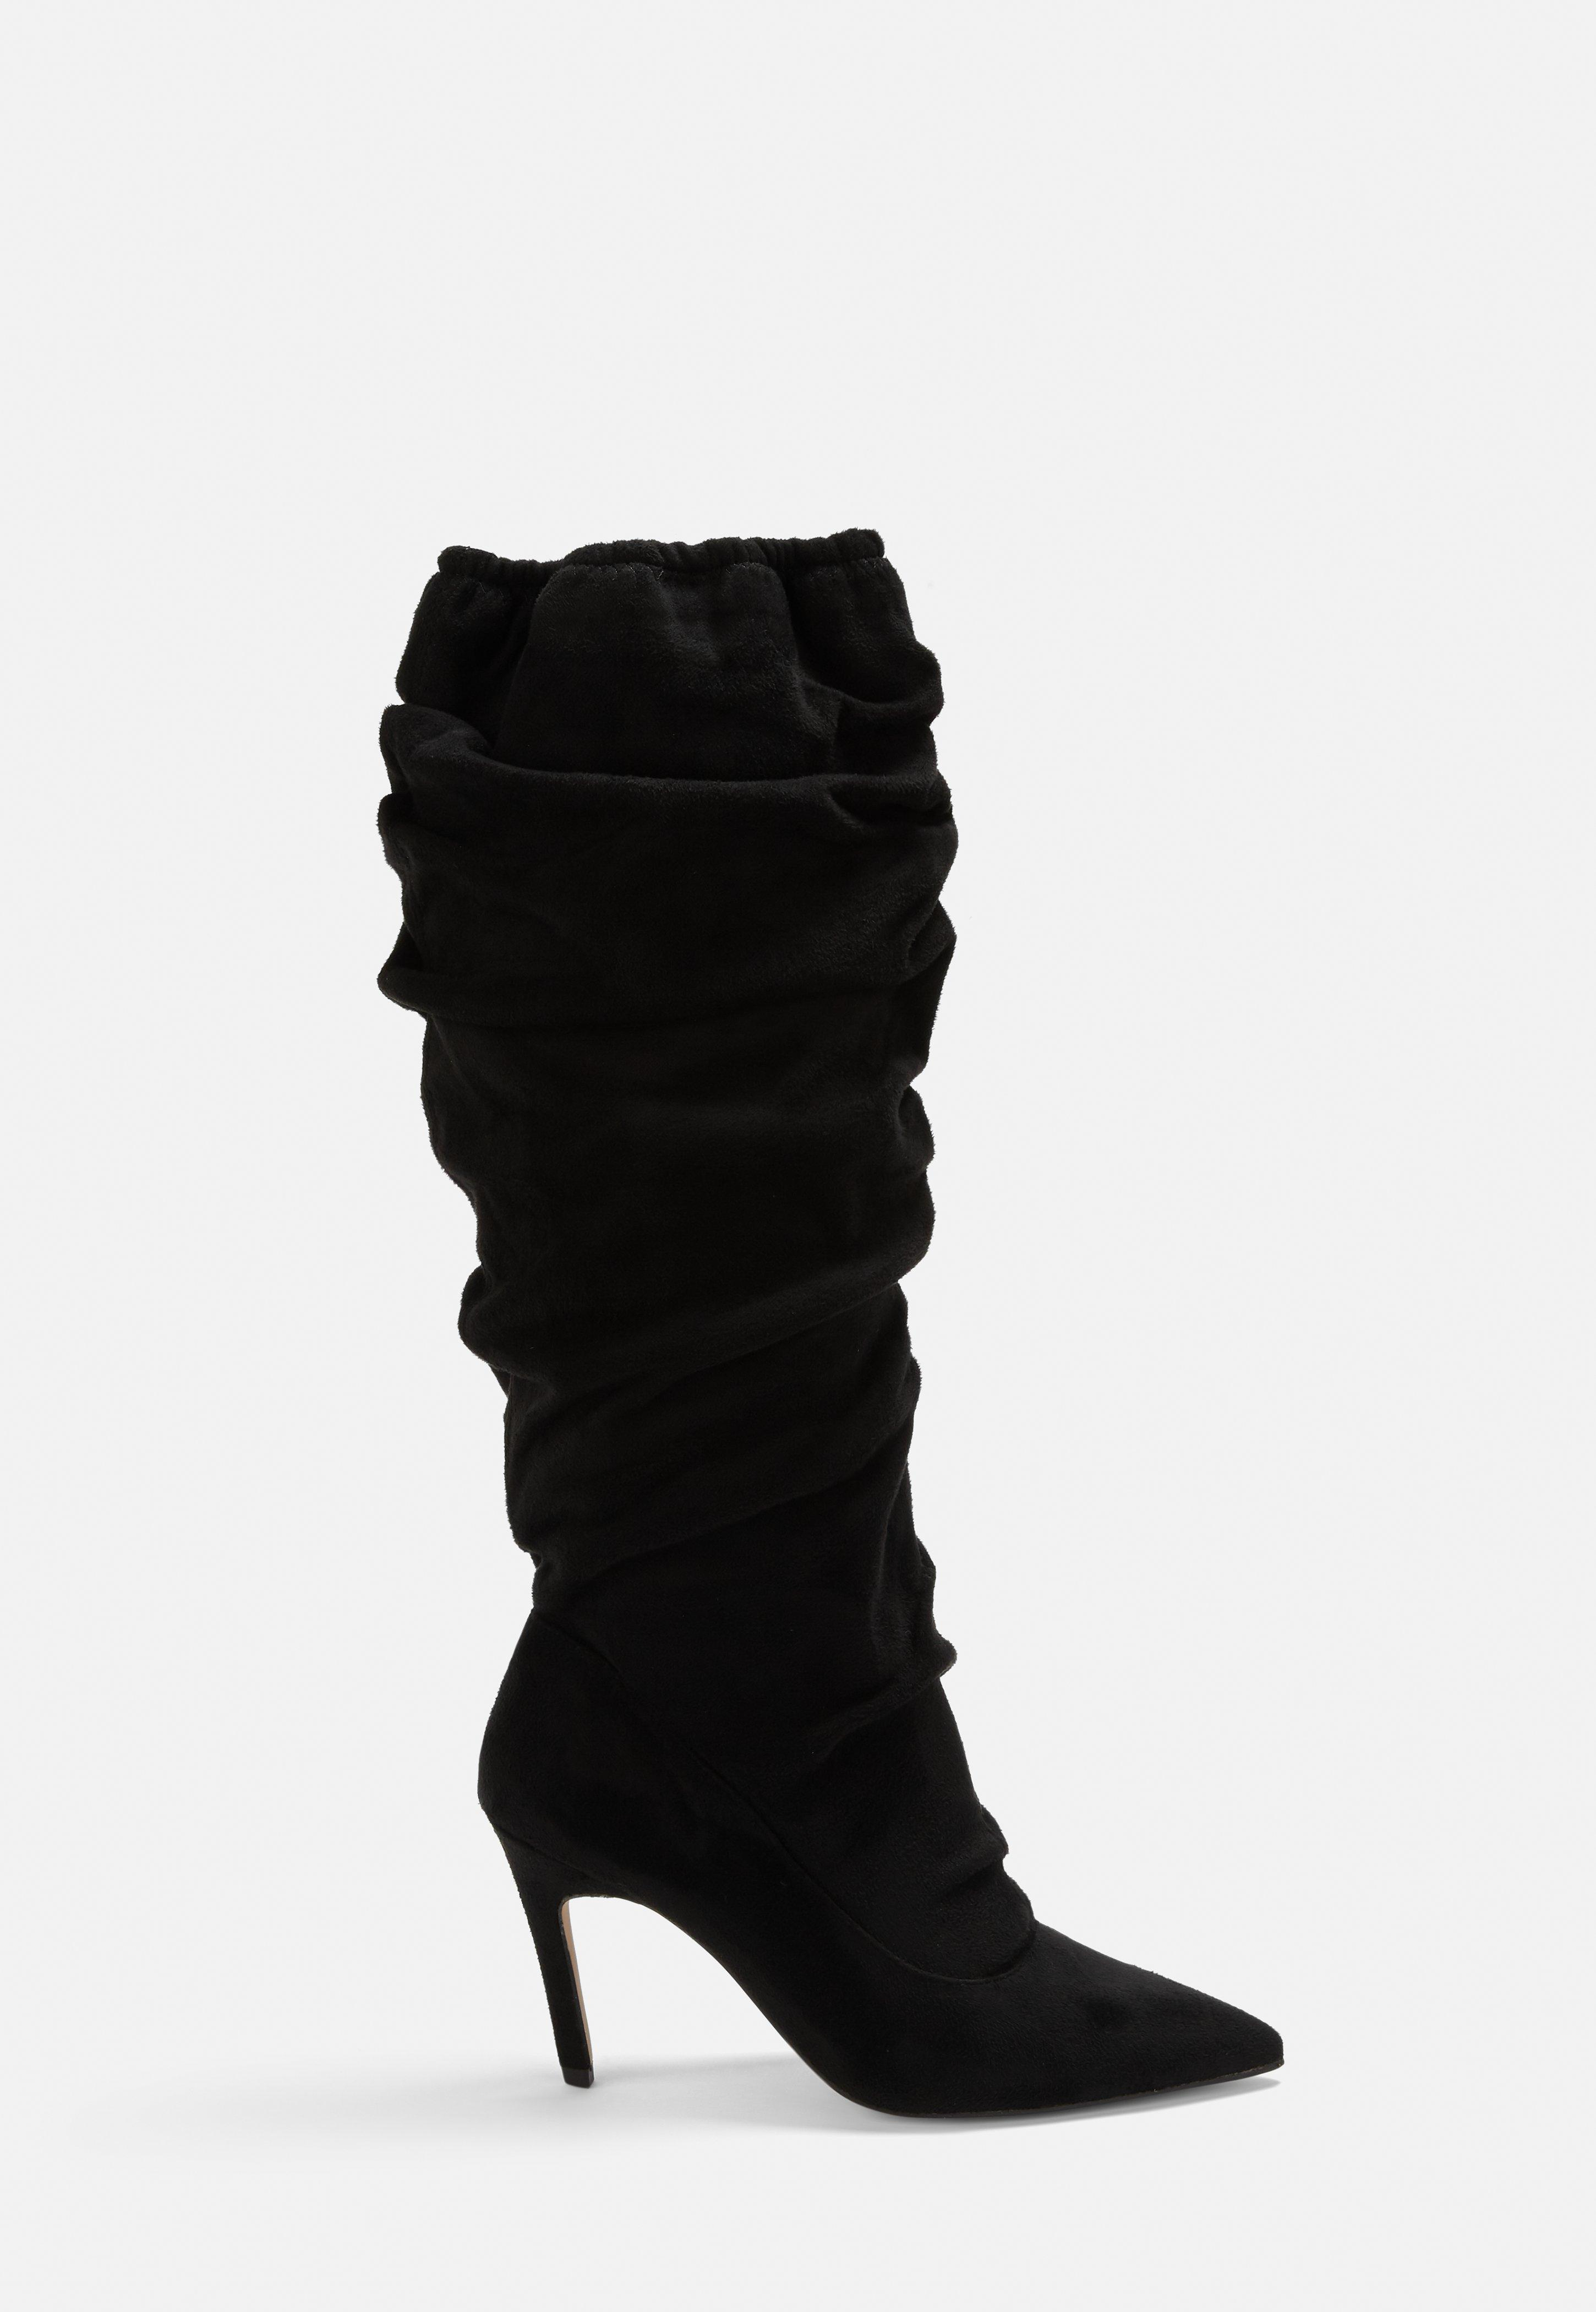 3e84167cf47 Black Faux Suede Ruched Pointed Toe Mid Heel Boots